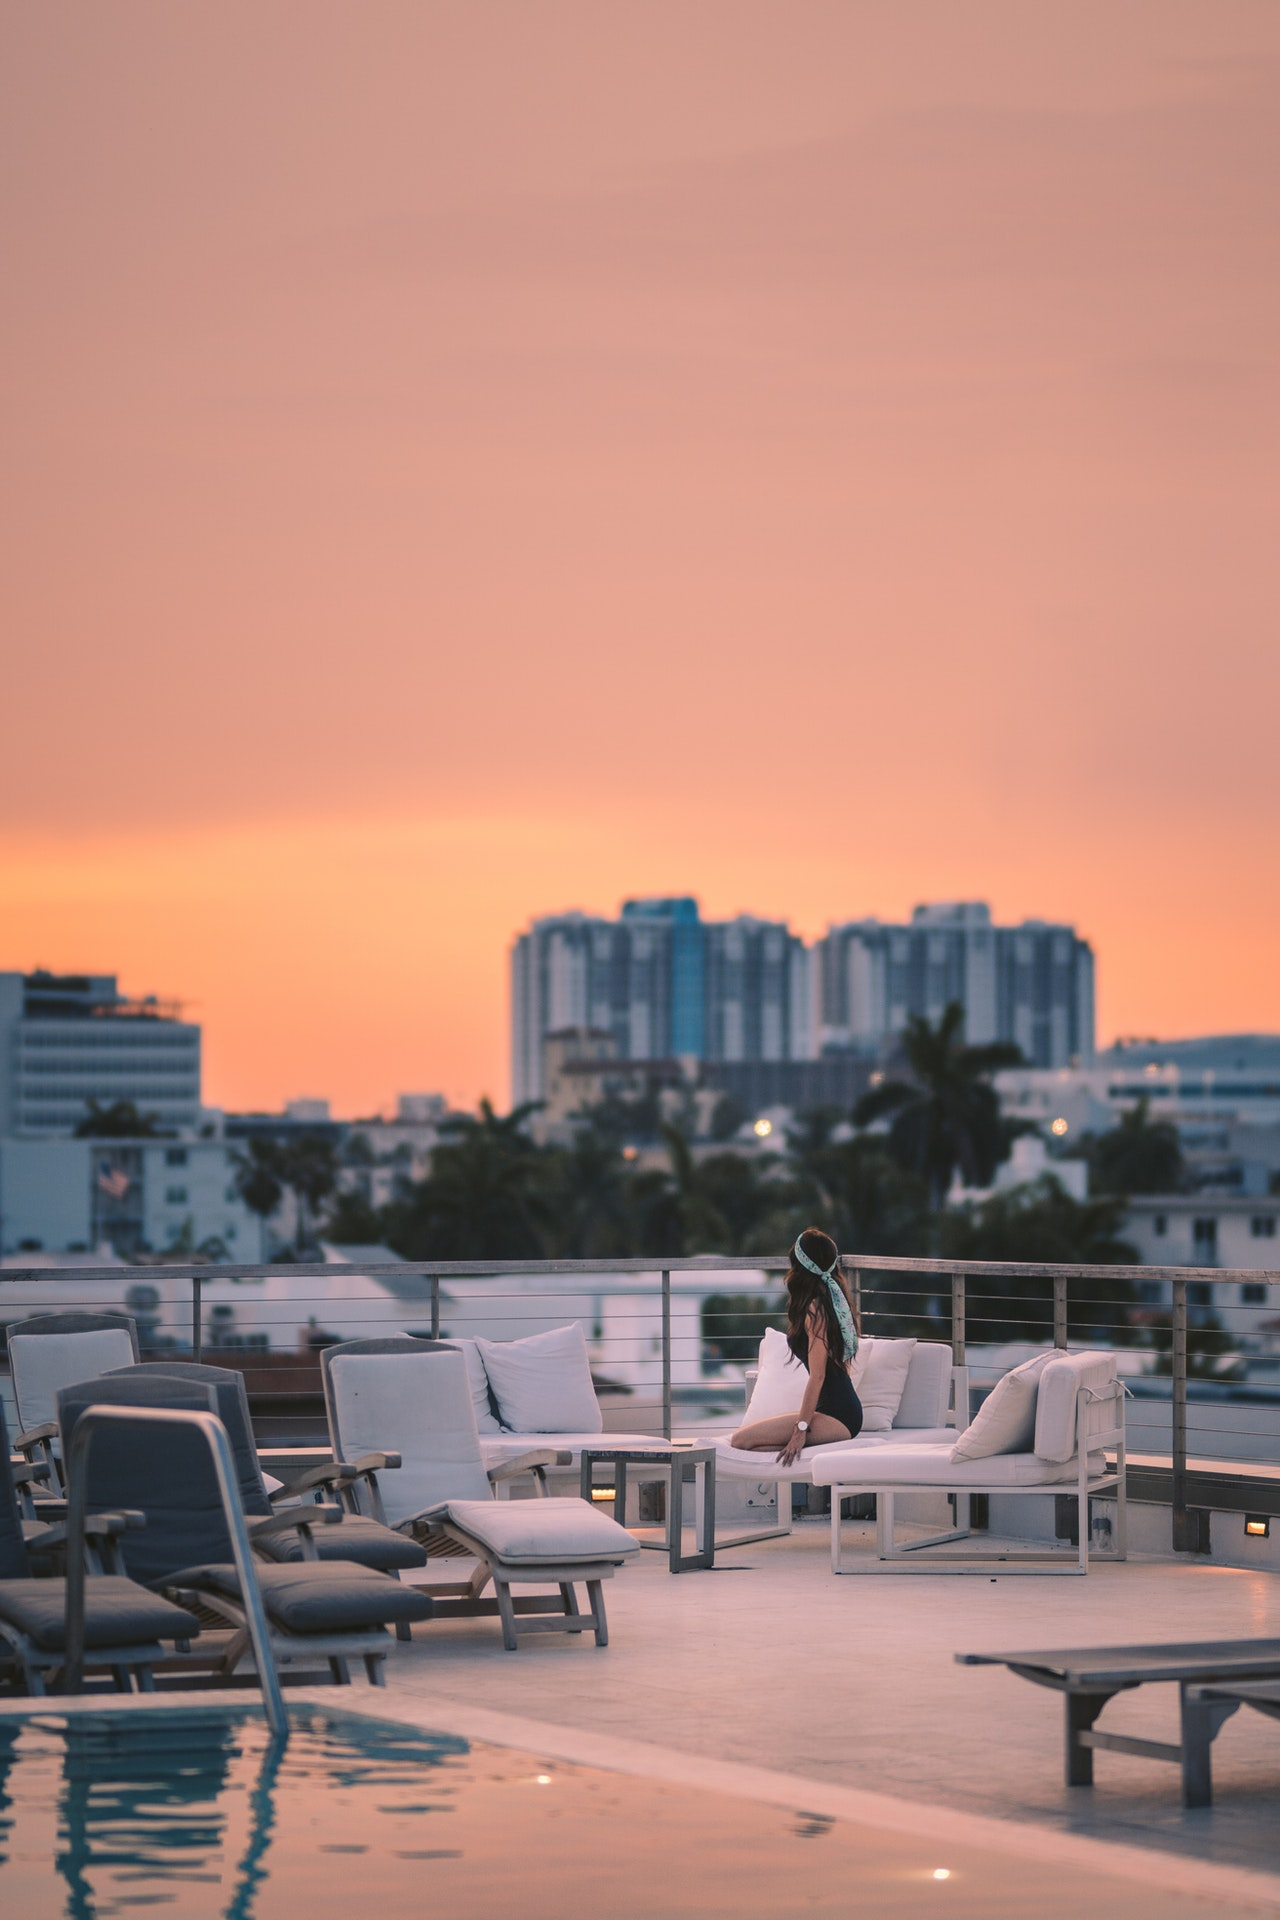 a sunset view of miami